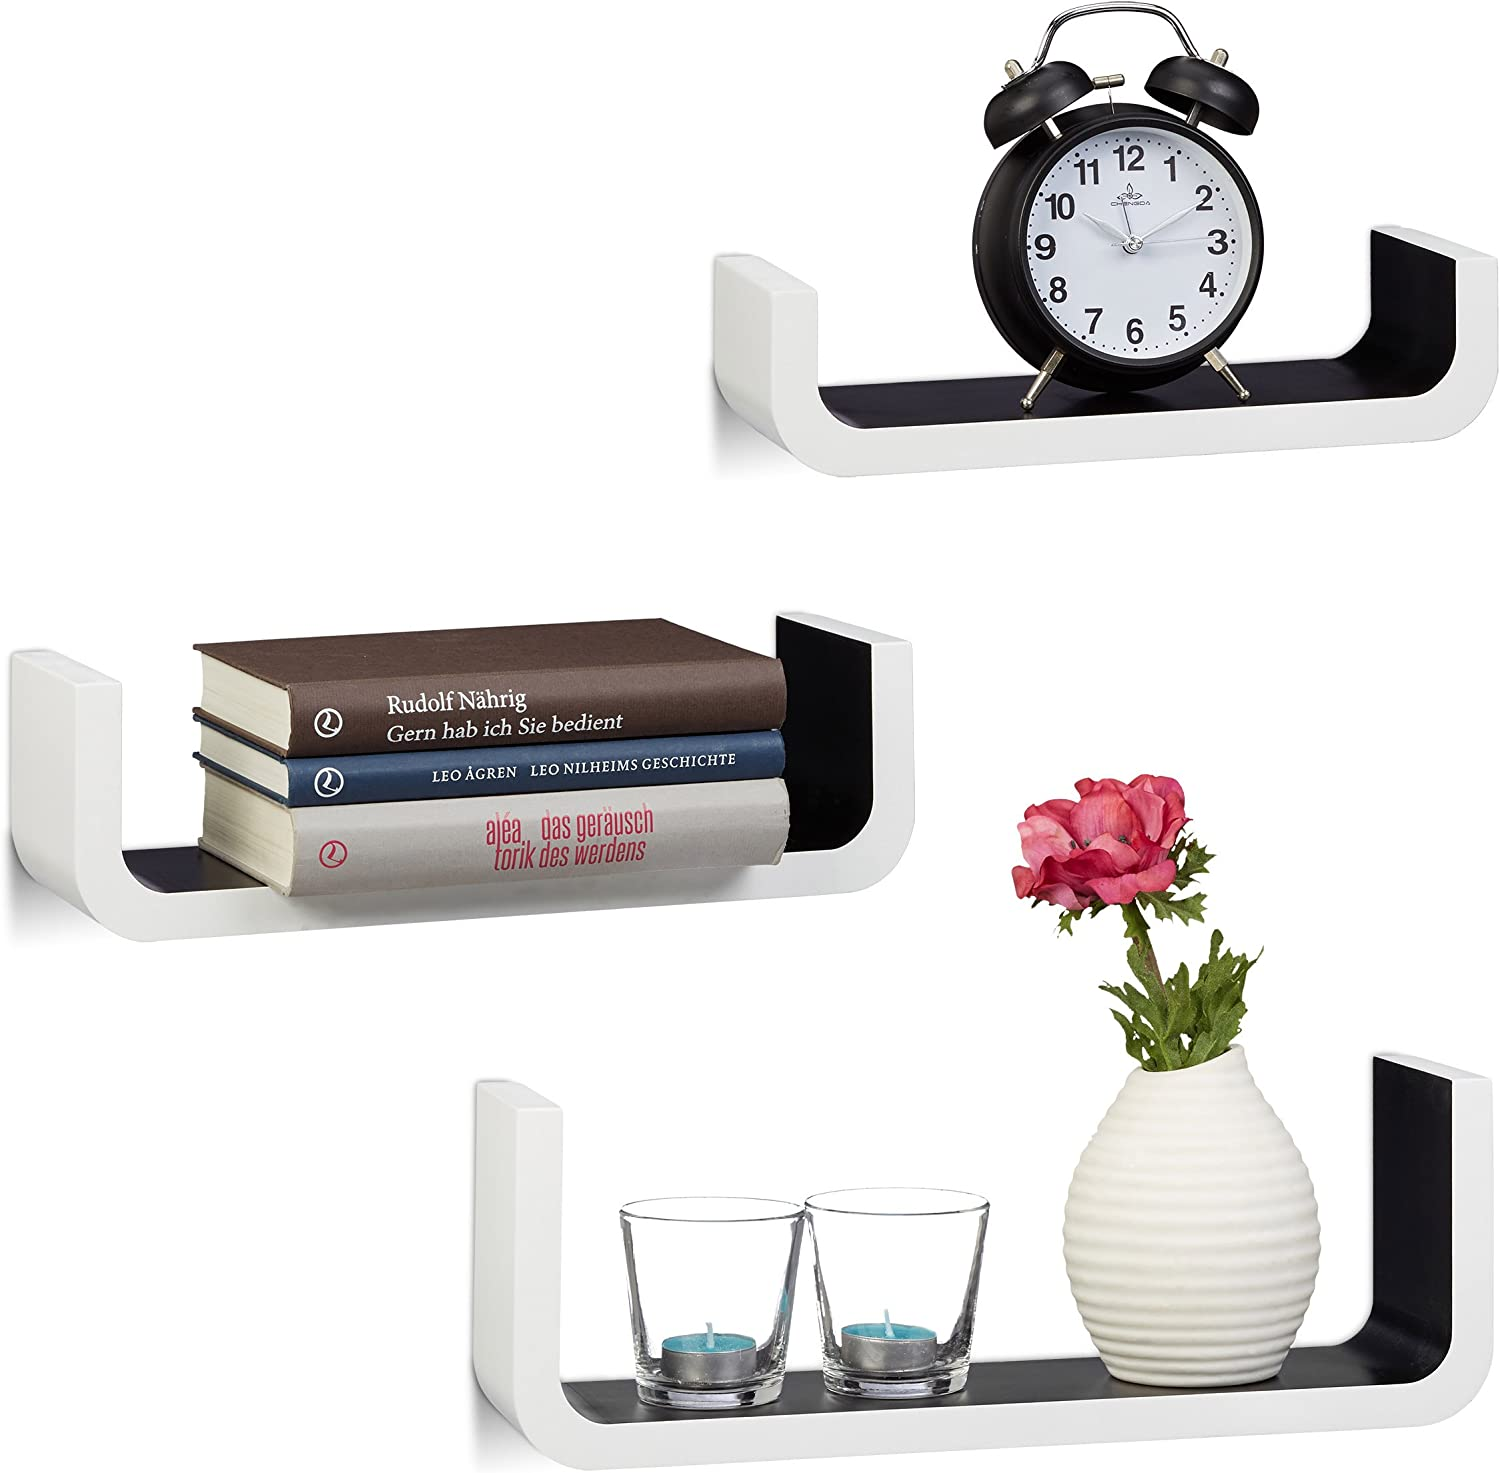 Small Wooden Floating Shelves 10 cm Depth 40 cm Width White Relaxdays U-Shaped Wall Shelves Set of 3